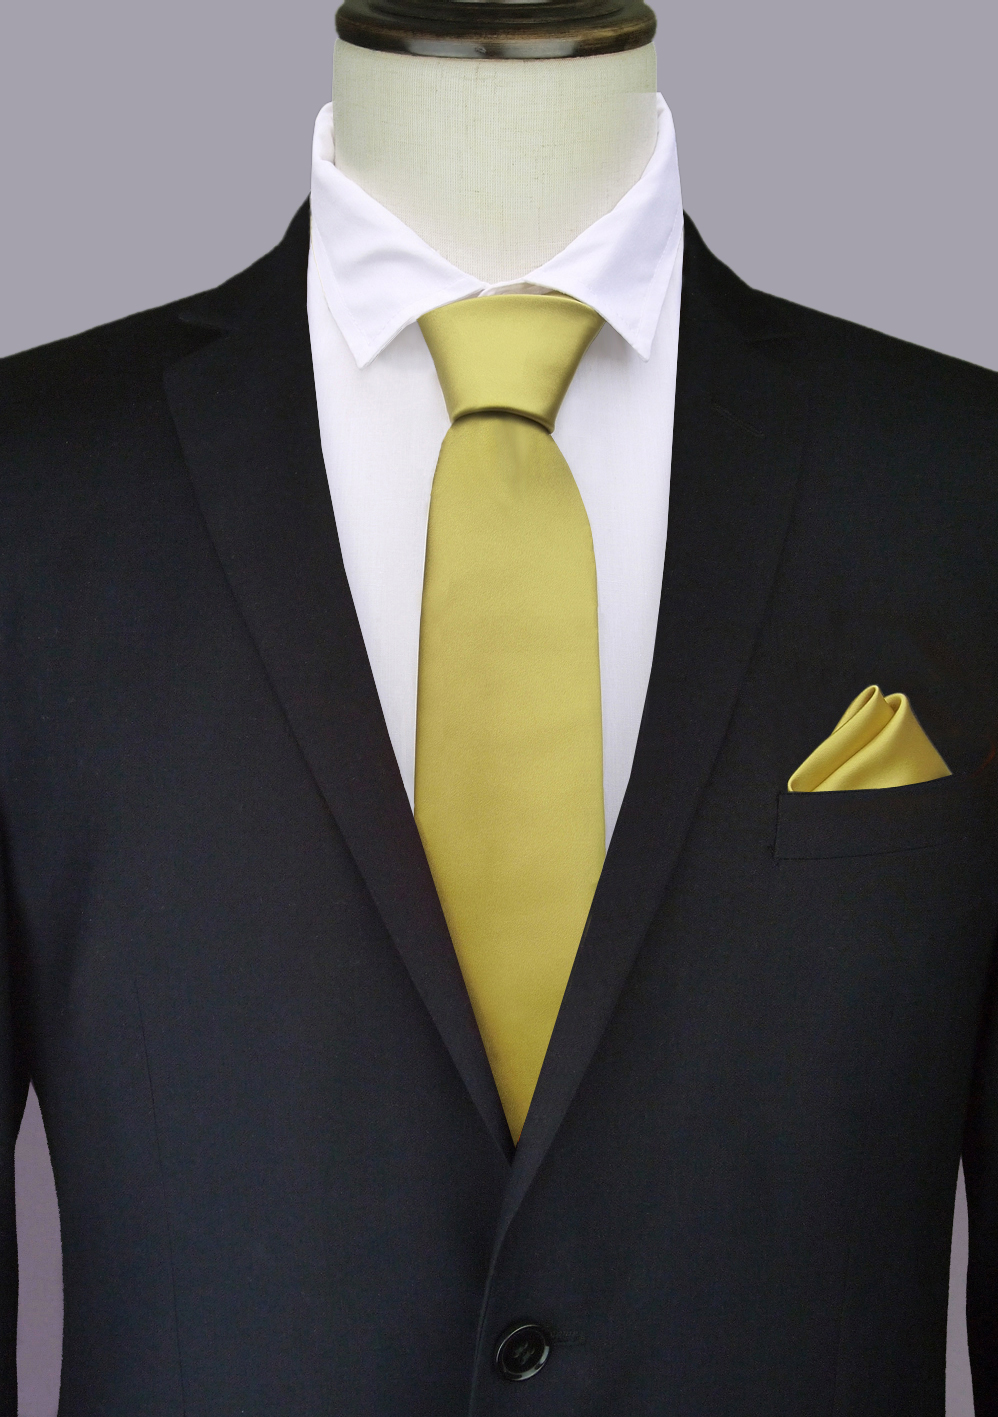 Gold Tie and Pocket Square